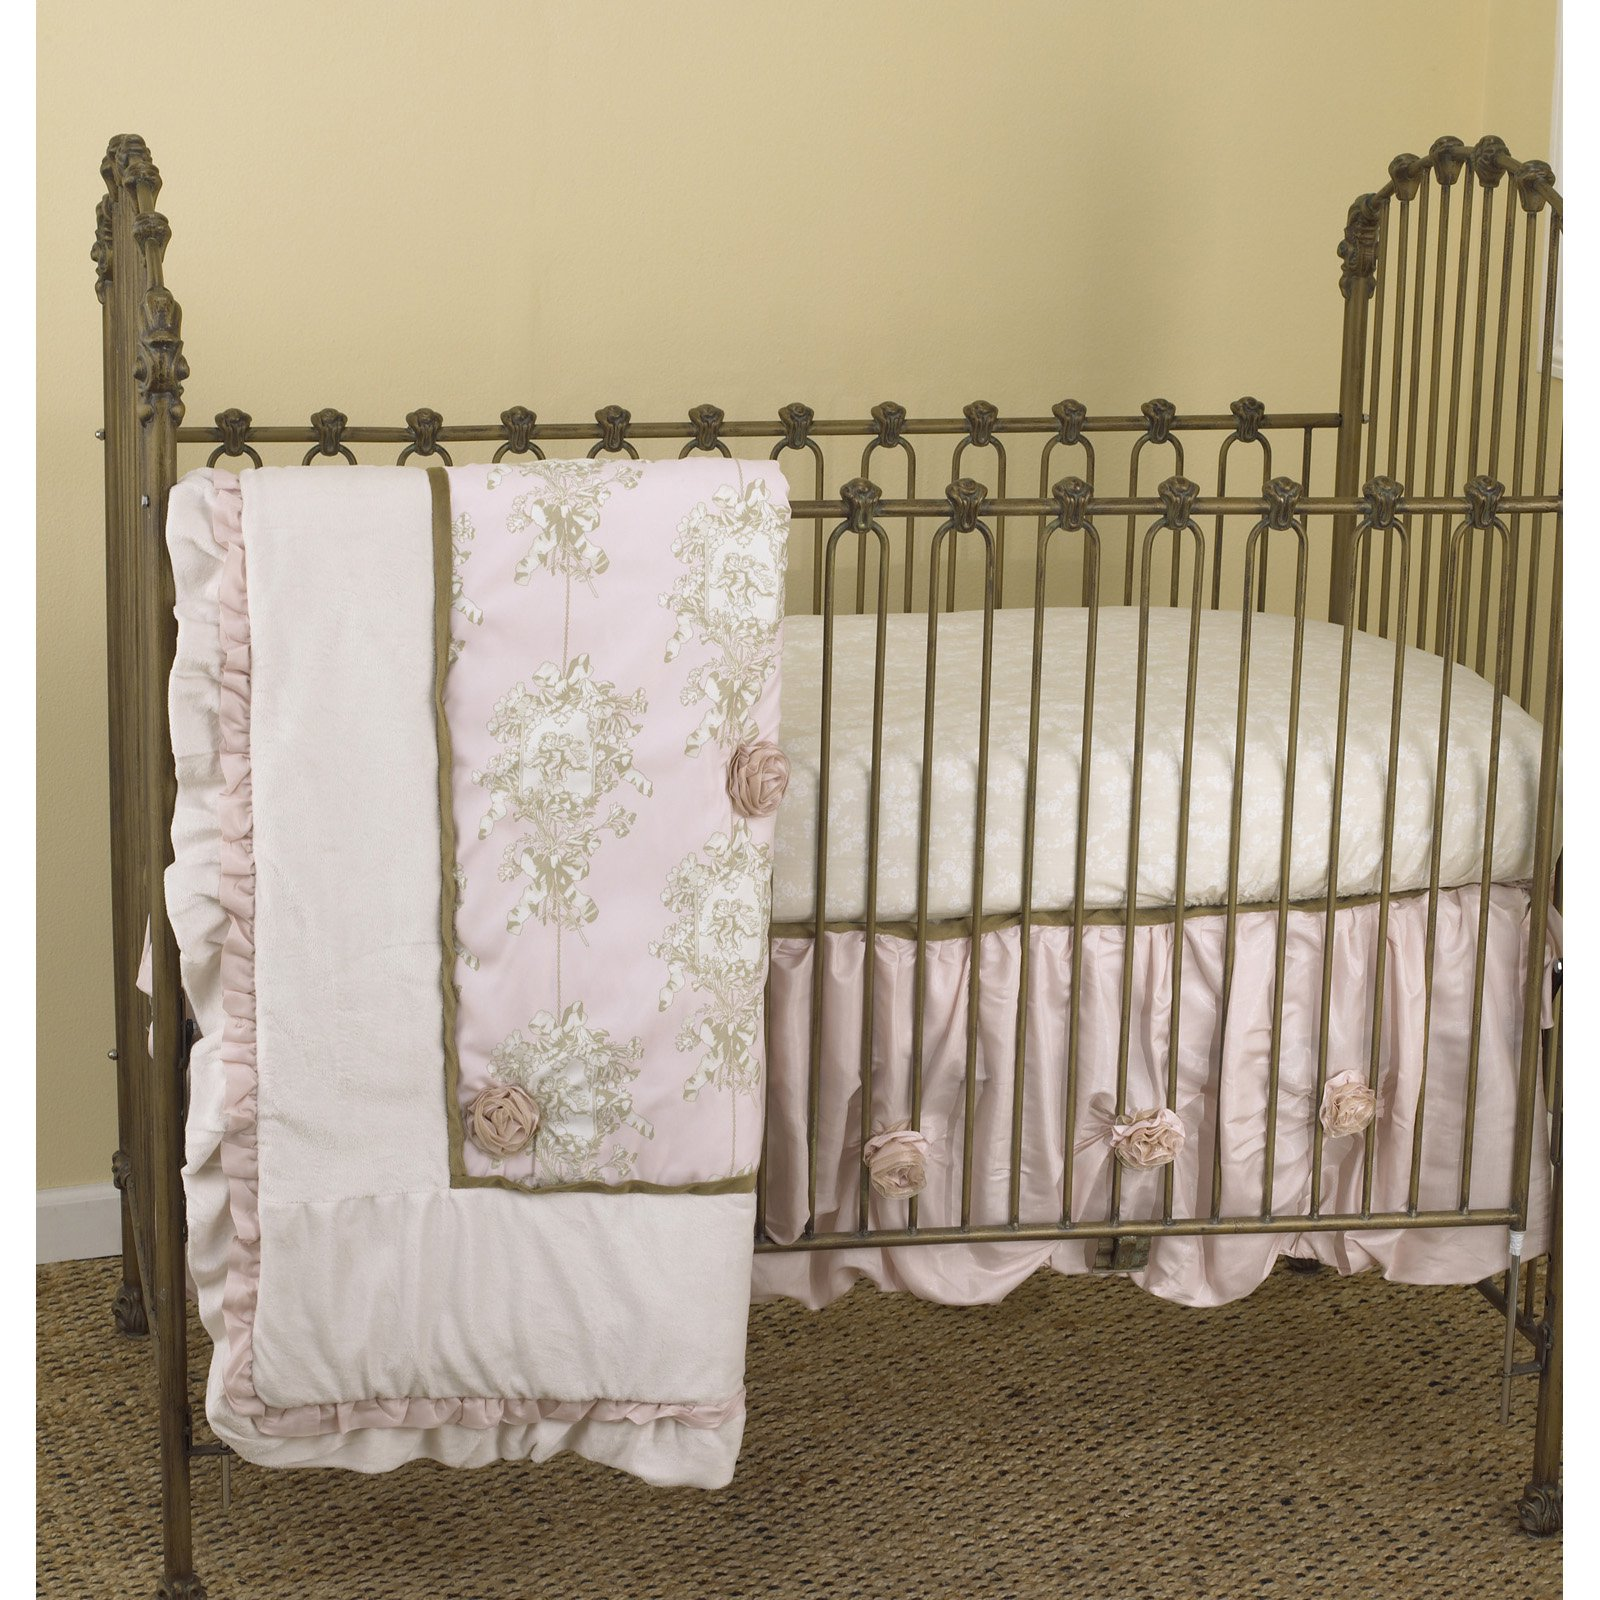 Cotton Tale Designs Lollipops and Roses 3 Piece Crib Bedding Set